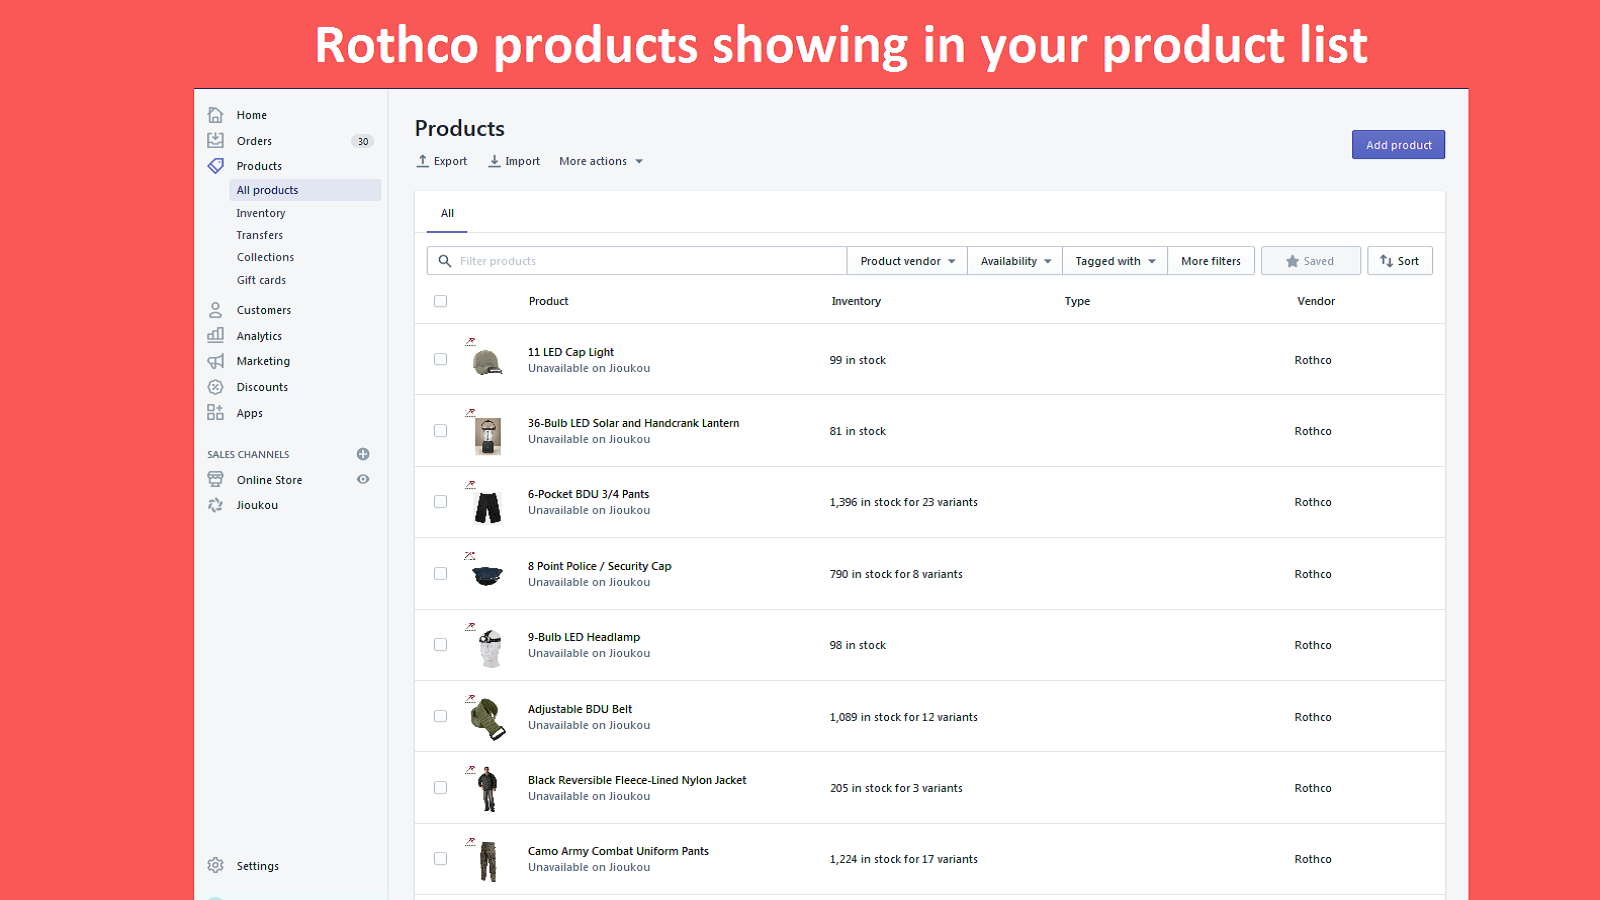 Rothco product showing in your product listing